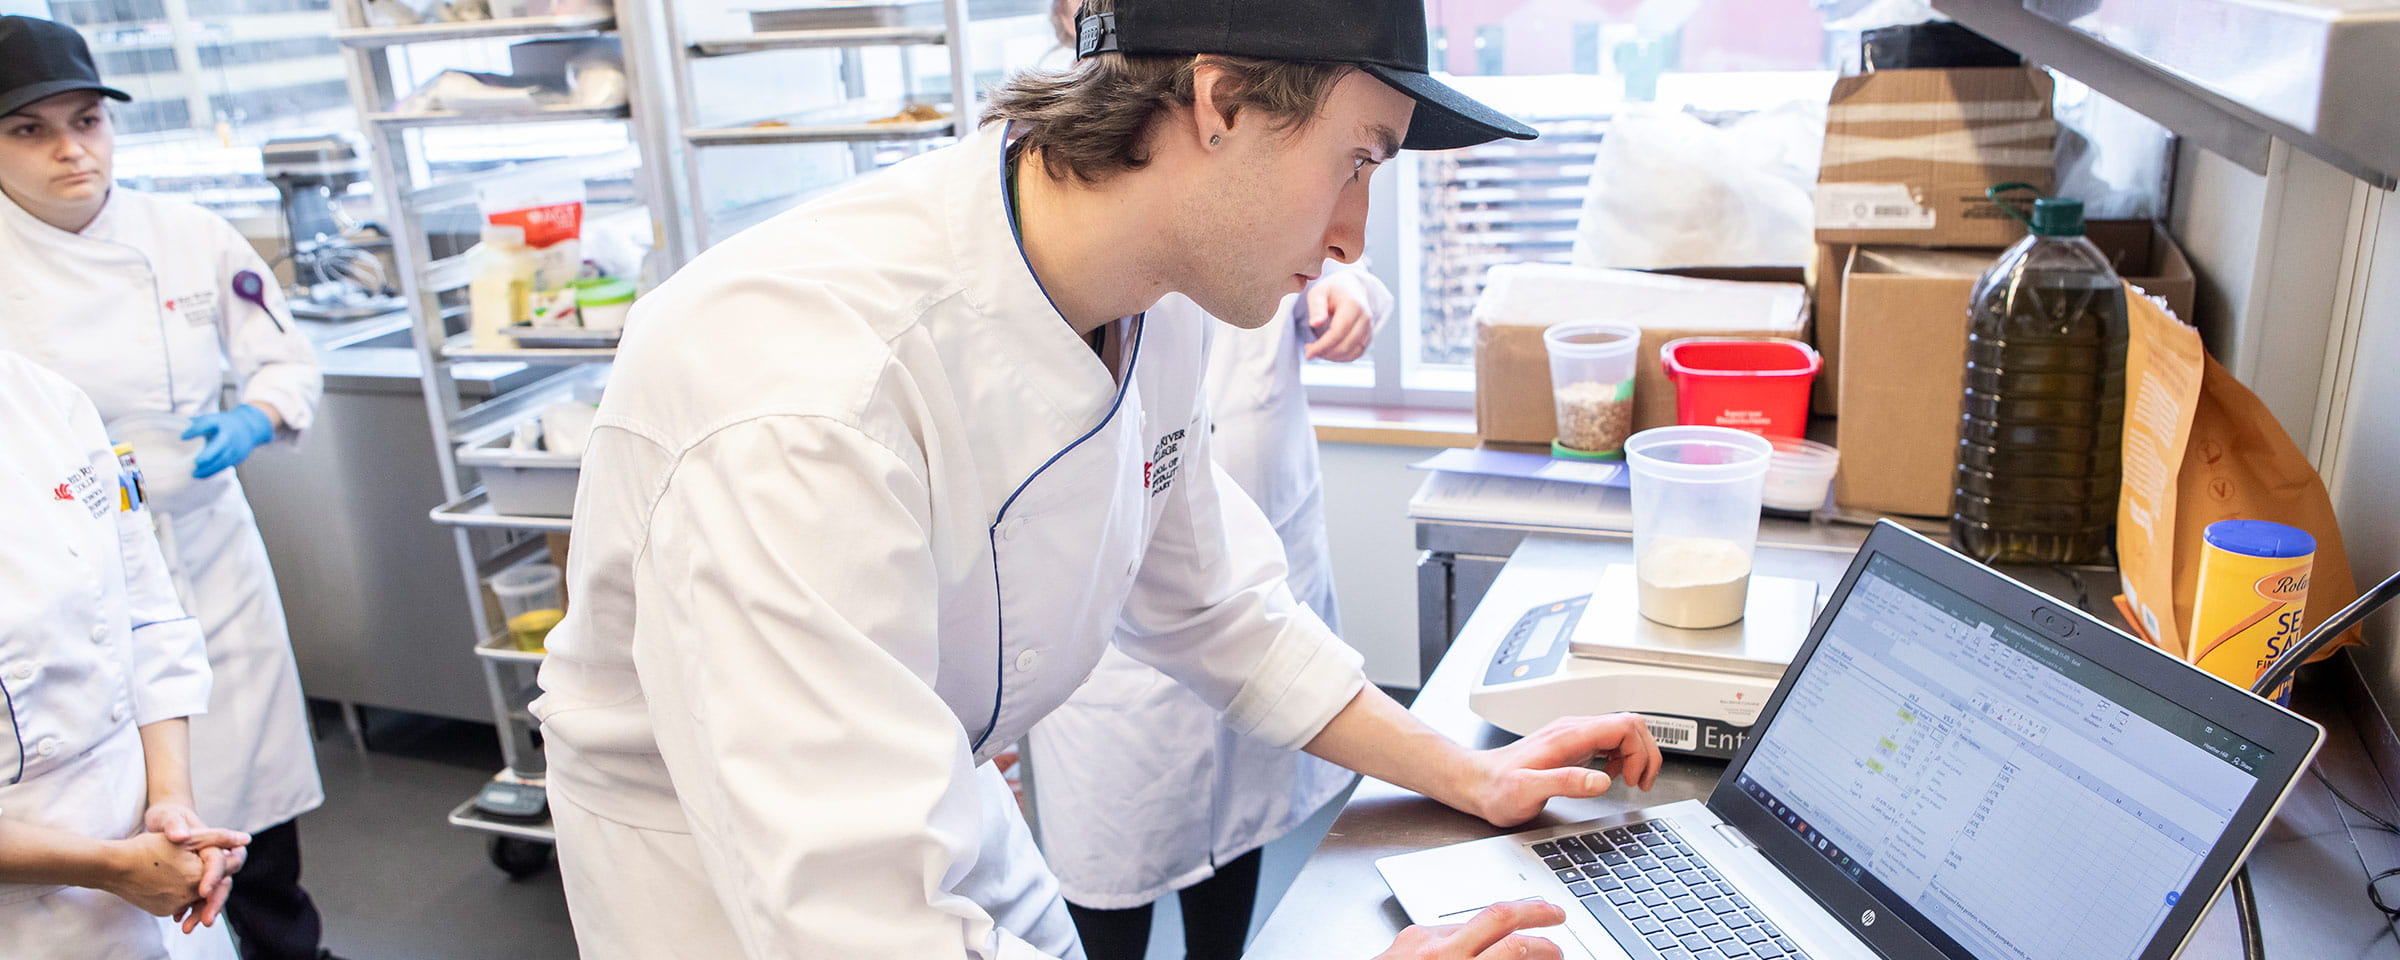 Culinary Research and Innovation